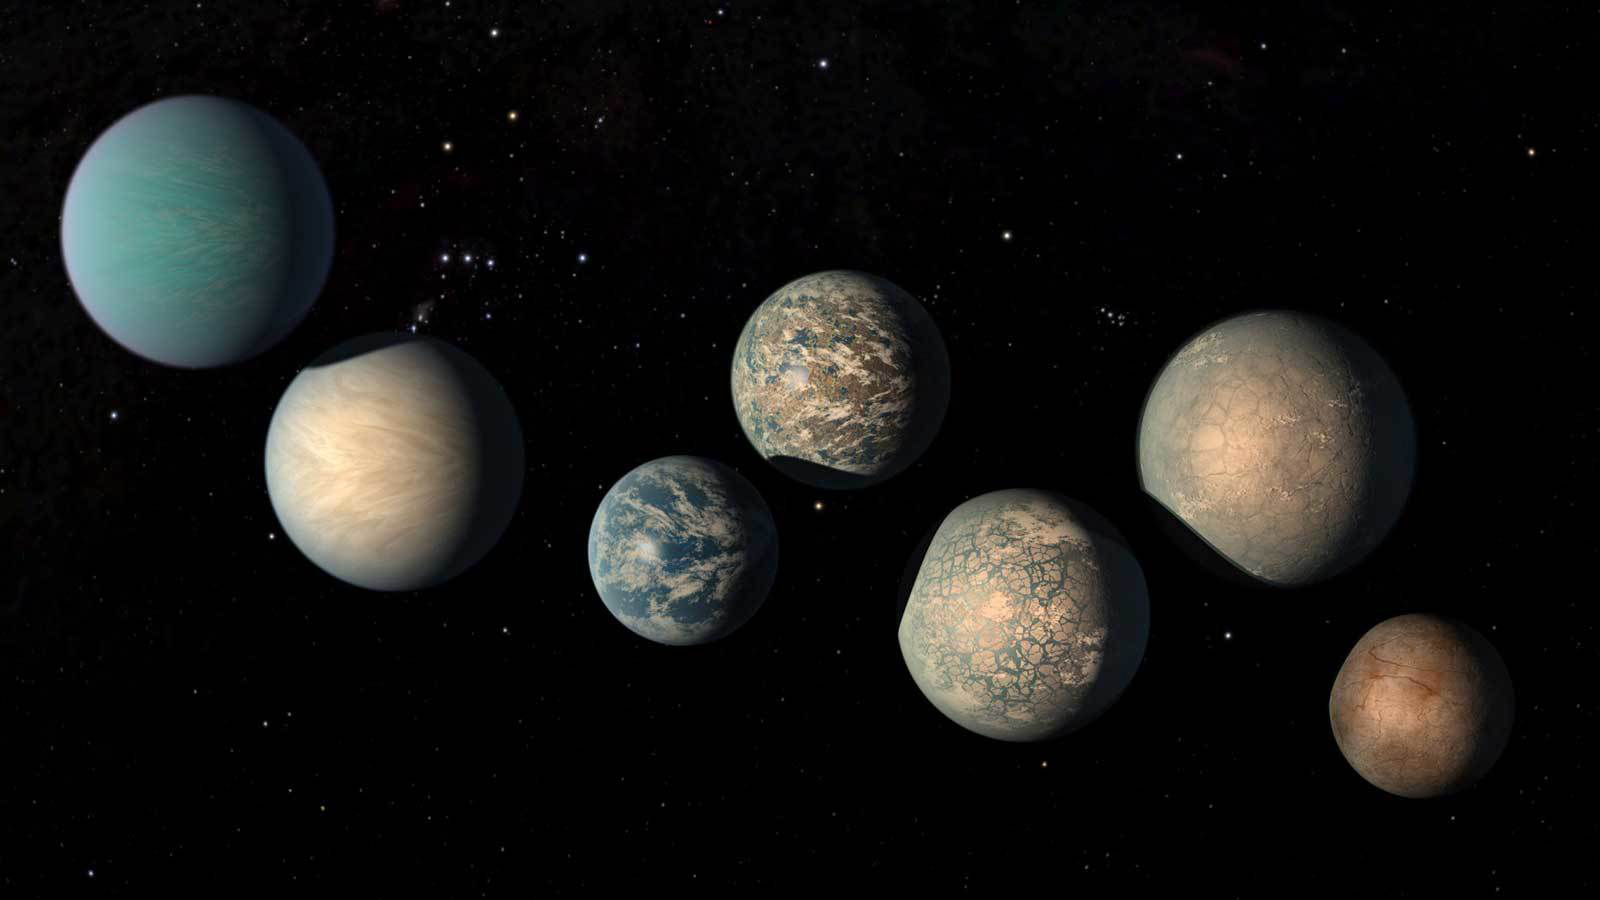 Illustration of the 7 planets of the TRAPPIST-1 system